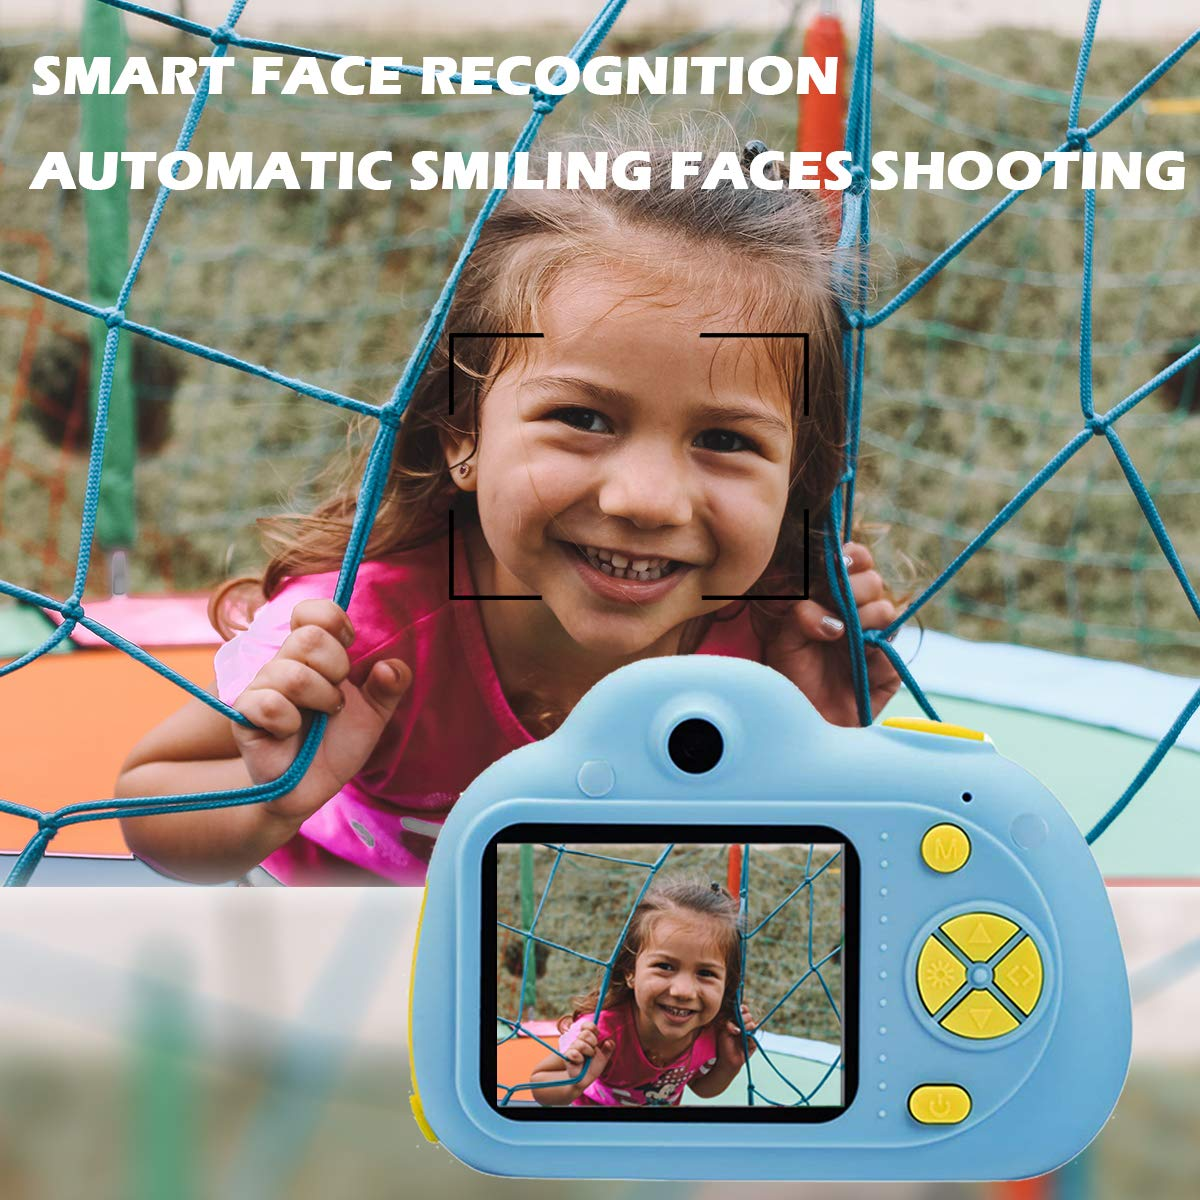 KIDOVE Kids Toys Fun Camera, Waterproof & Shockproof Child Selfie digital game Camcorder, 8MP 1080P dual camera Video Recorder, Creative Birthday Gifts for girls and boys, 16GB TF Card Included (Blue) by KIDOVE (Image #3)